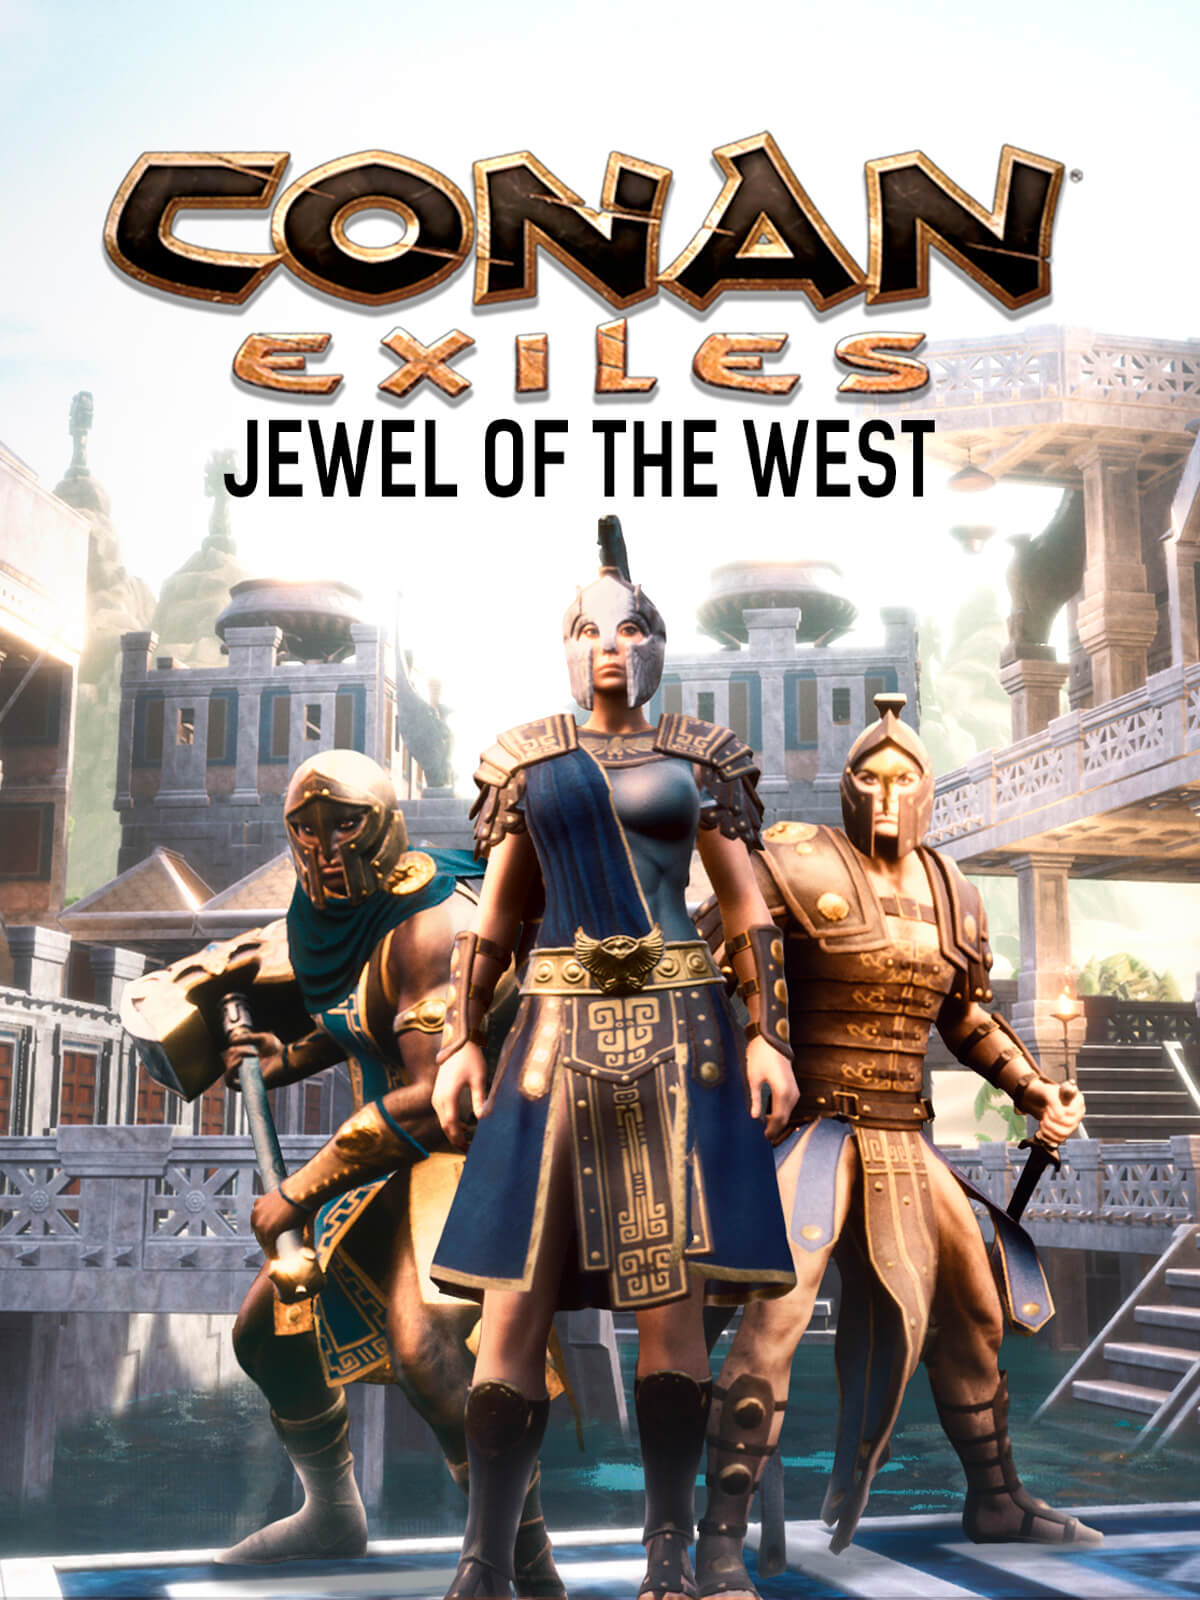 Conan Exiles Jewel Of The West Pack Contains Armor flexibility kit armor plating armor reduction kit thick armor plating thin armor plating. conan exiles jewel of the west pack